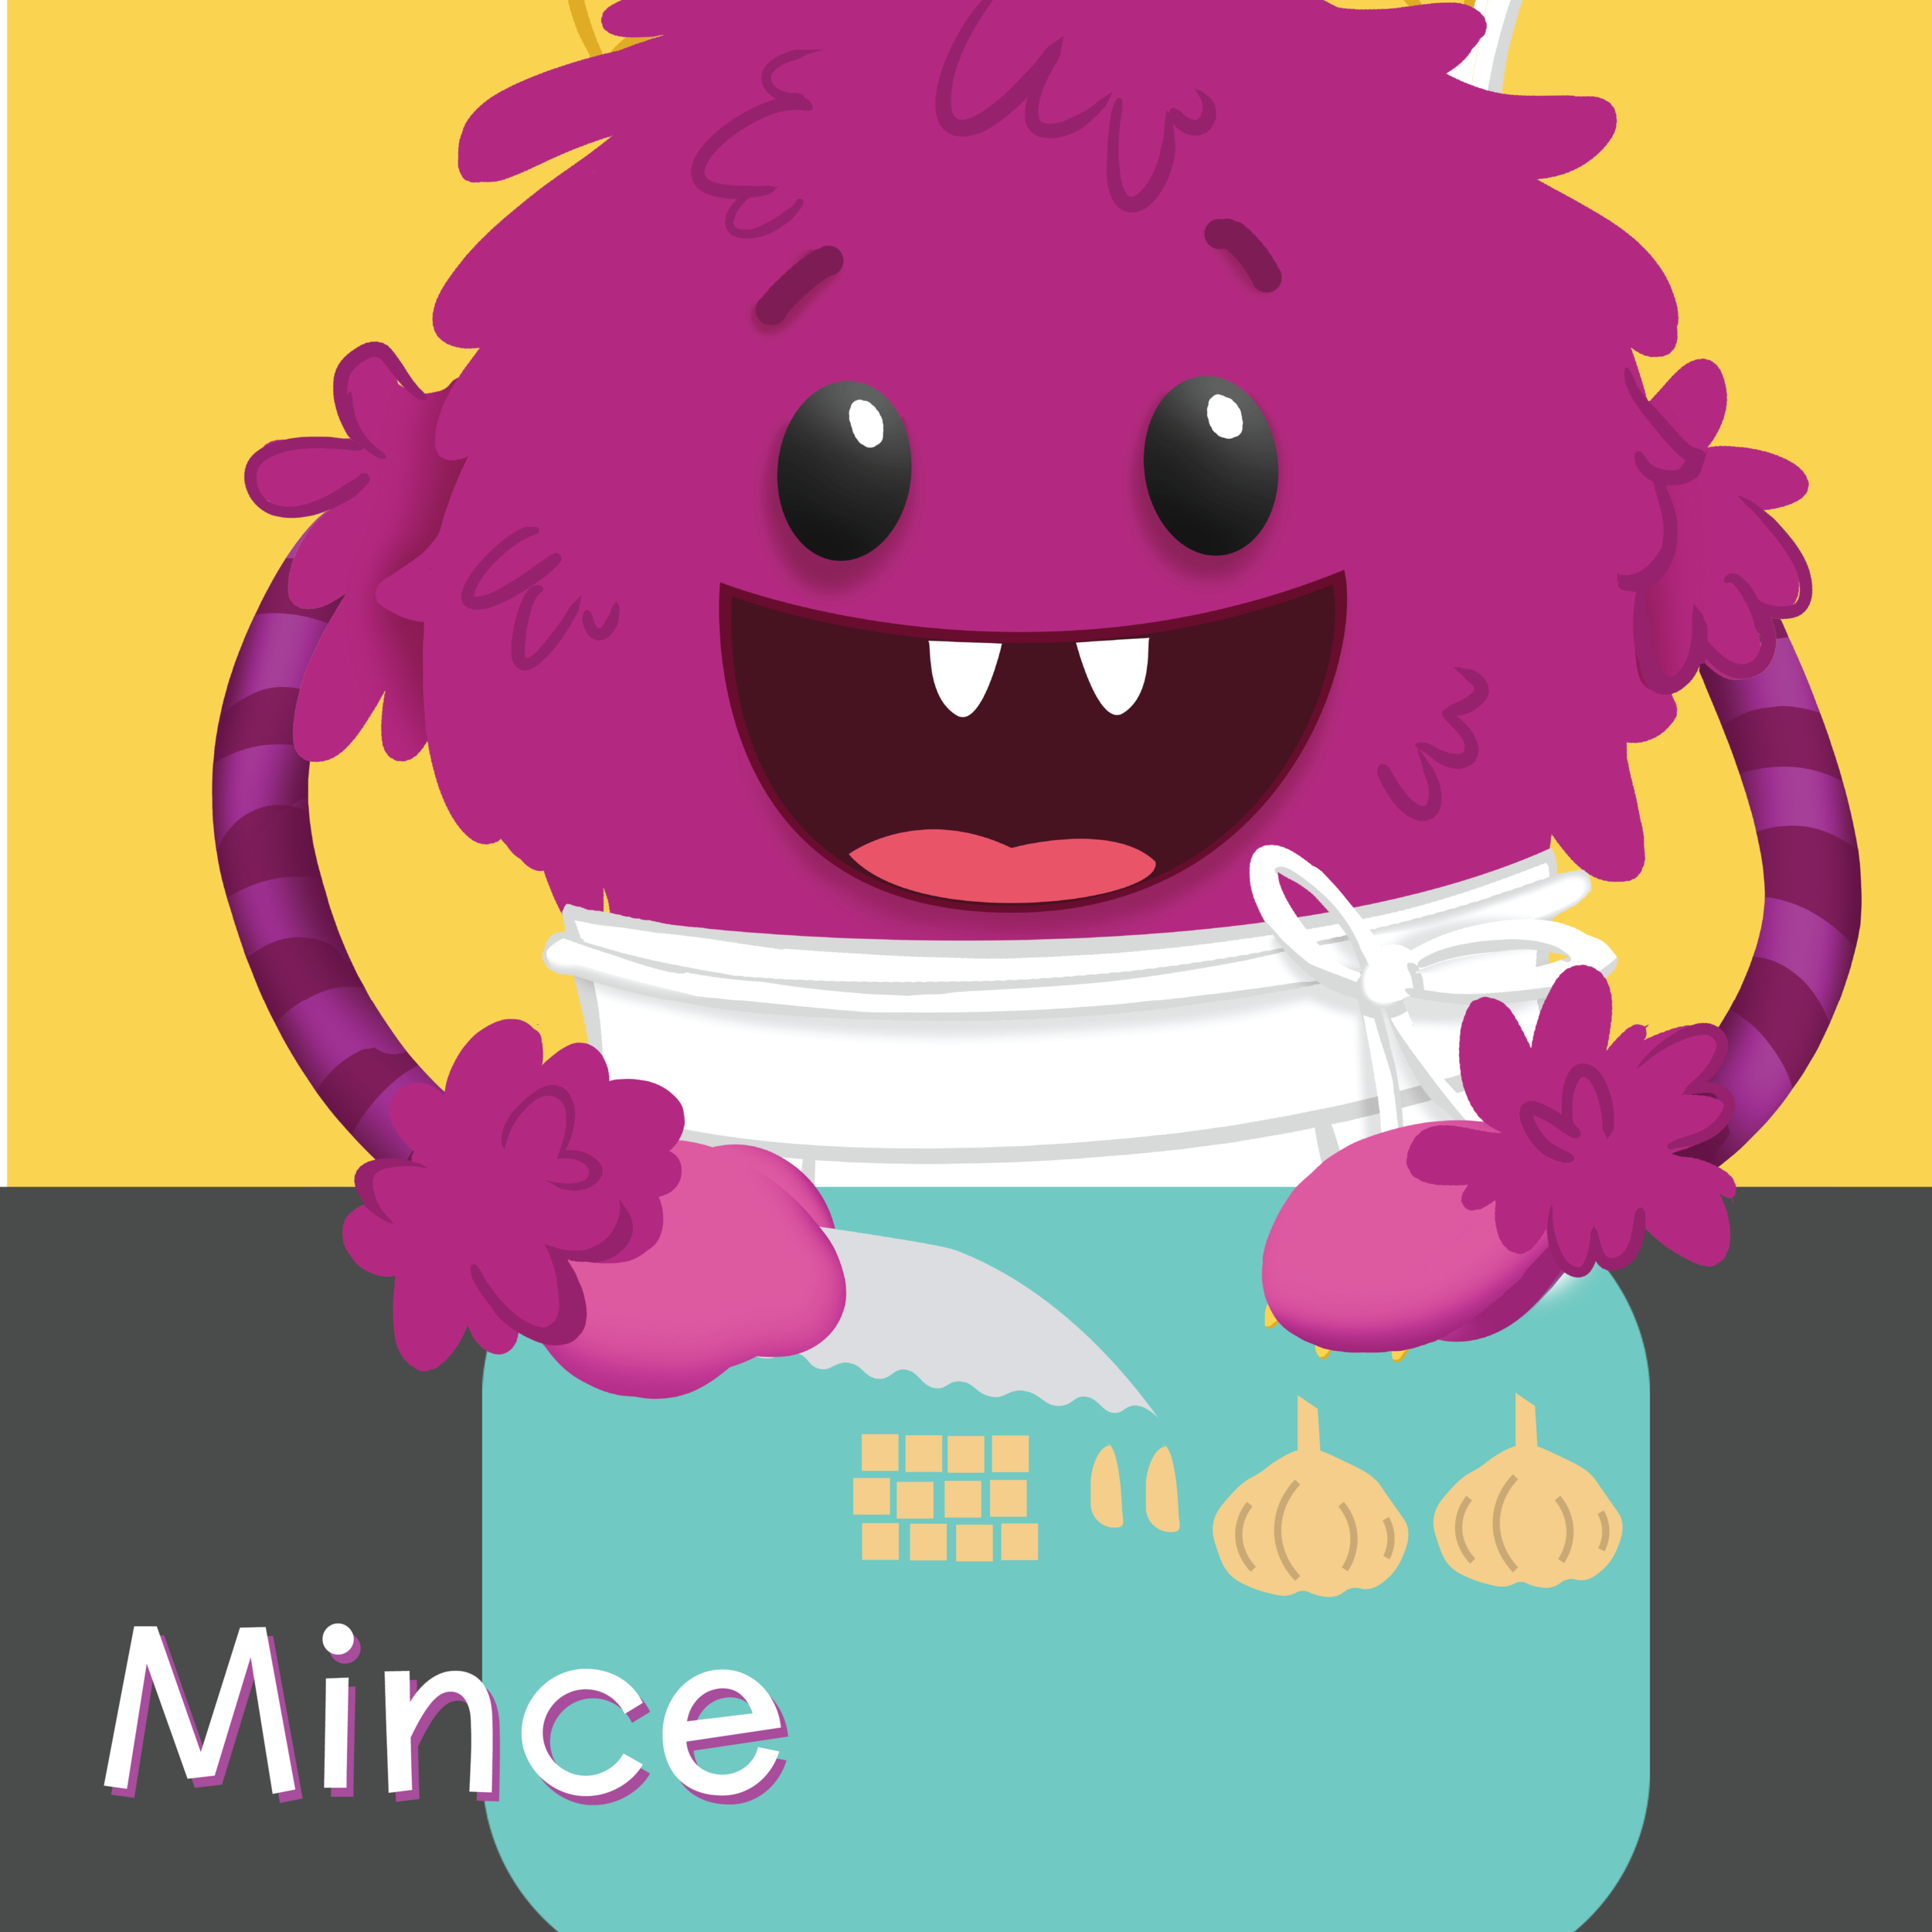 Mince-01.png